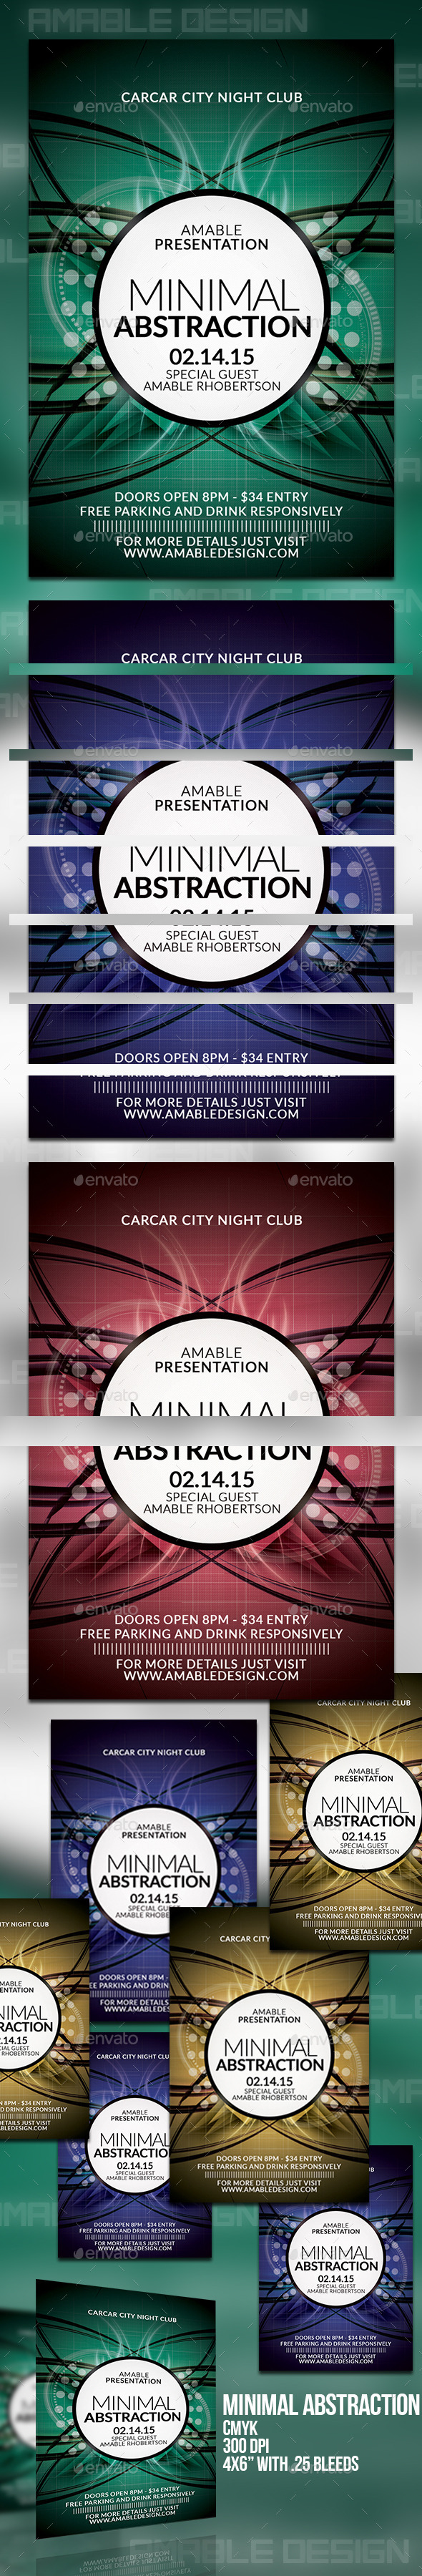 GraphicRiver Minimal Abstraction Flyer 10288854